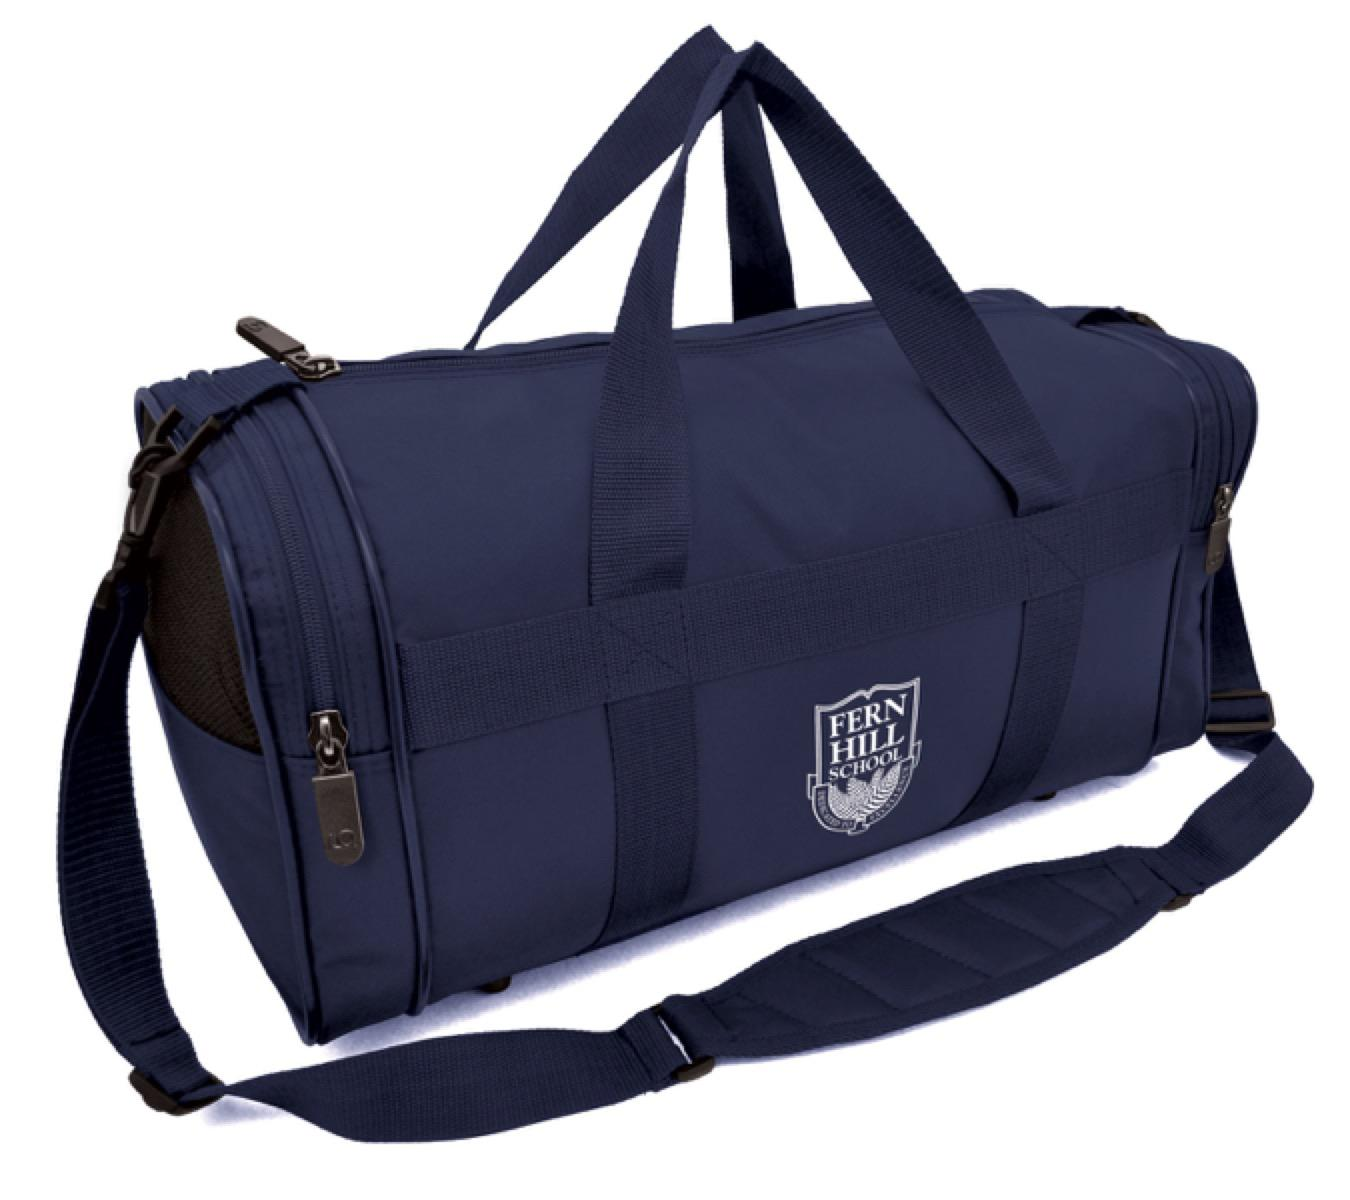 Pronto Sports Bag, From 24.55